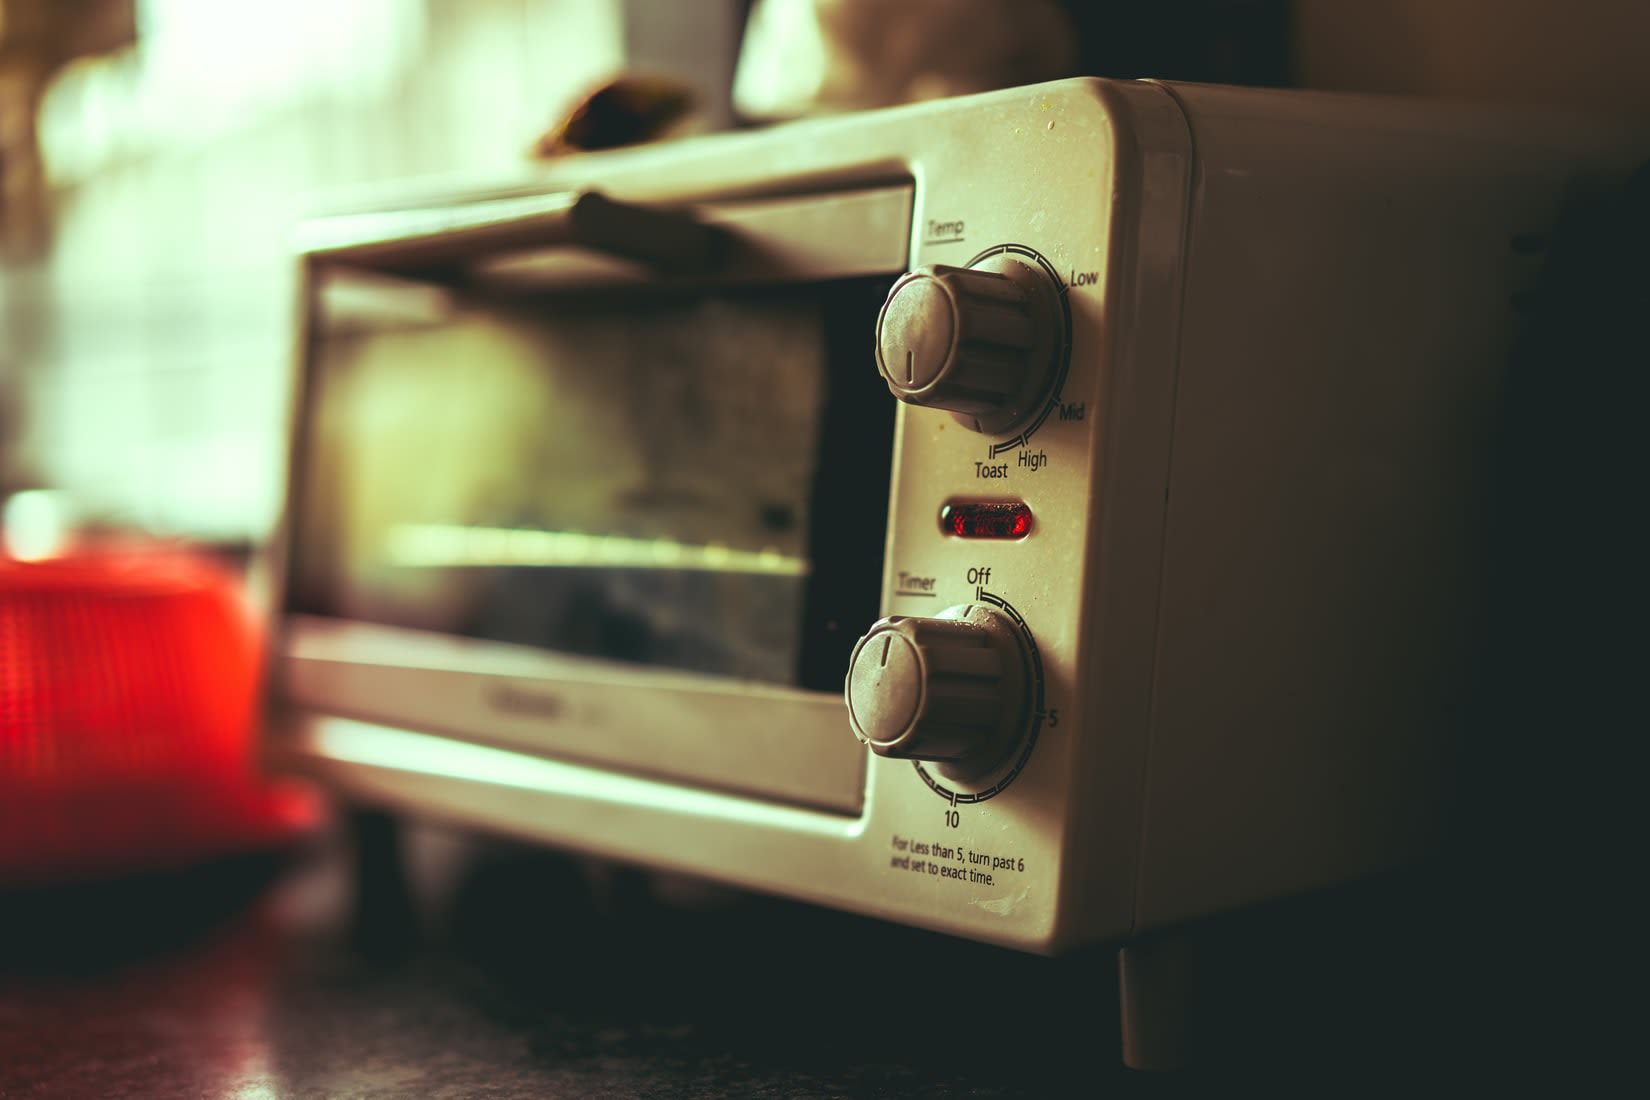 What are the differences between a steam oven and a microwave?